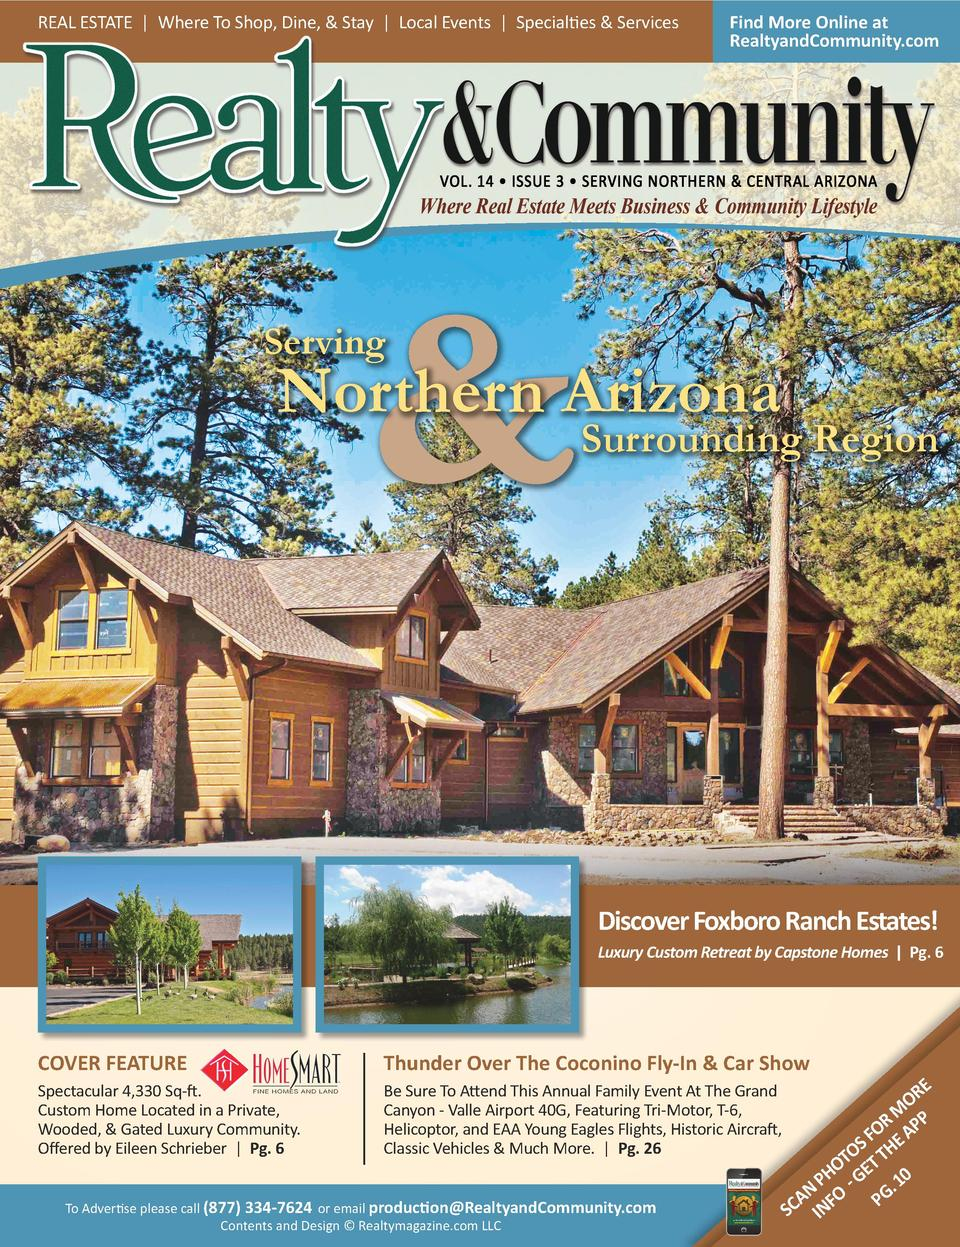 REAL ESTATE   Where To Shop, Dine,   Stay   Local Events   Specialties   Services  Find More Online at RealtyandCommunity....